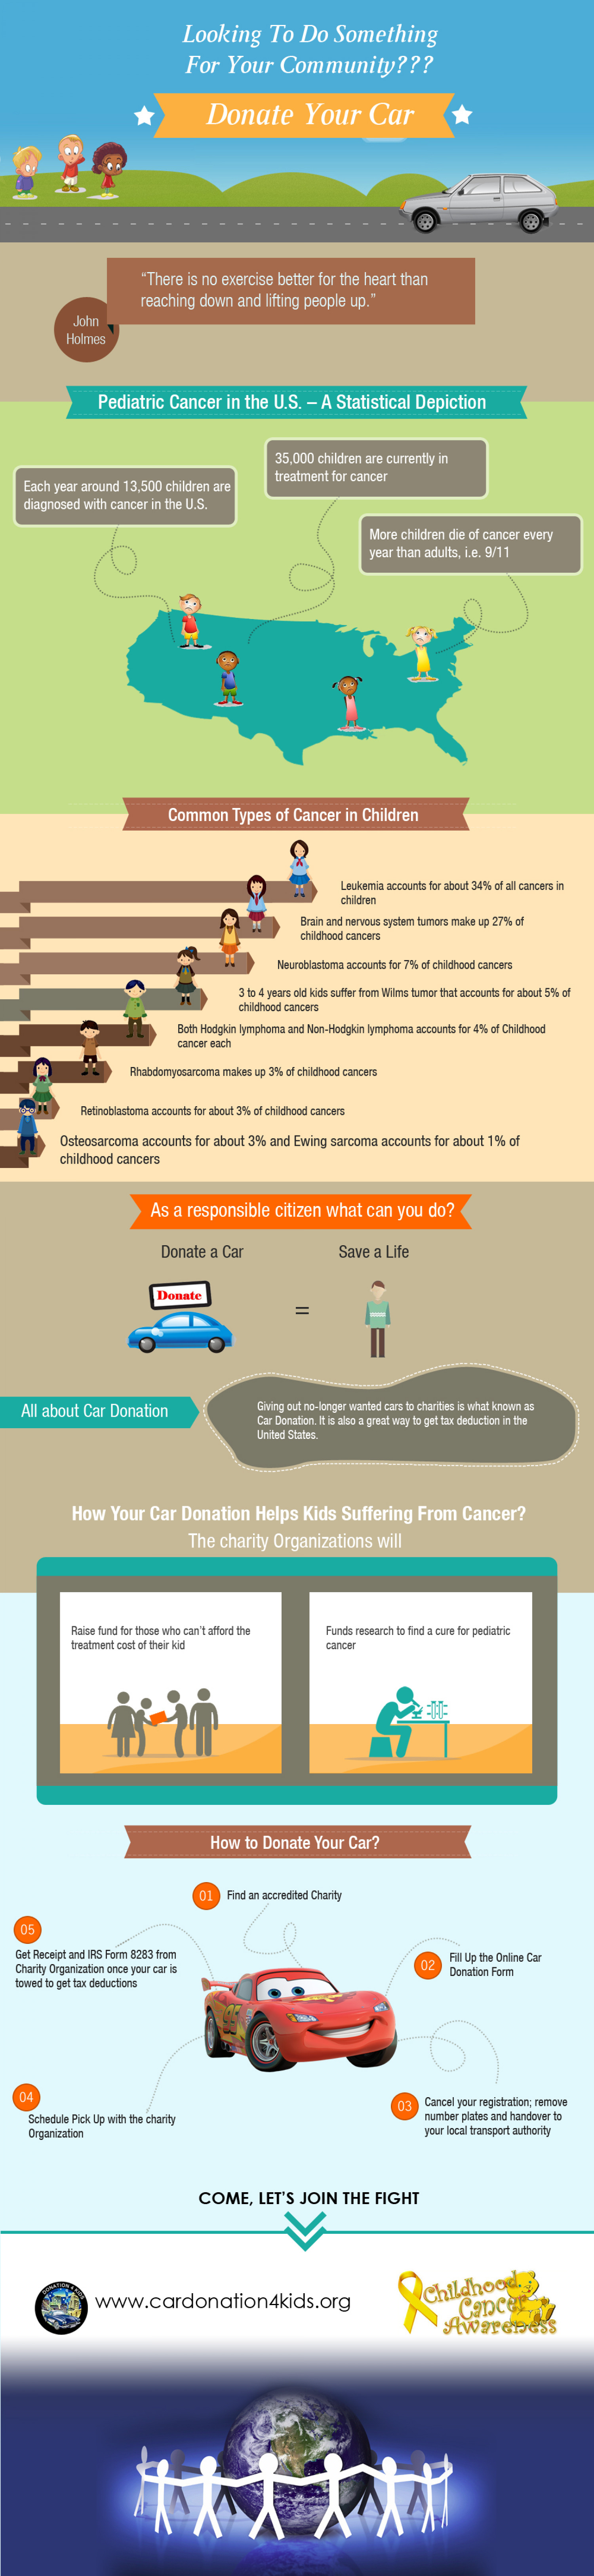 Looking for something to do for your community? Donate your car Infographic